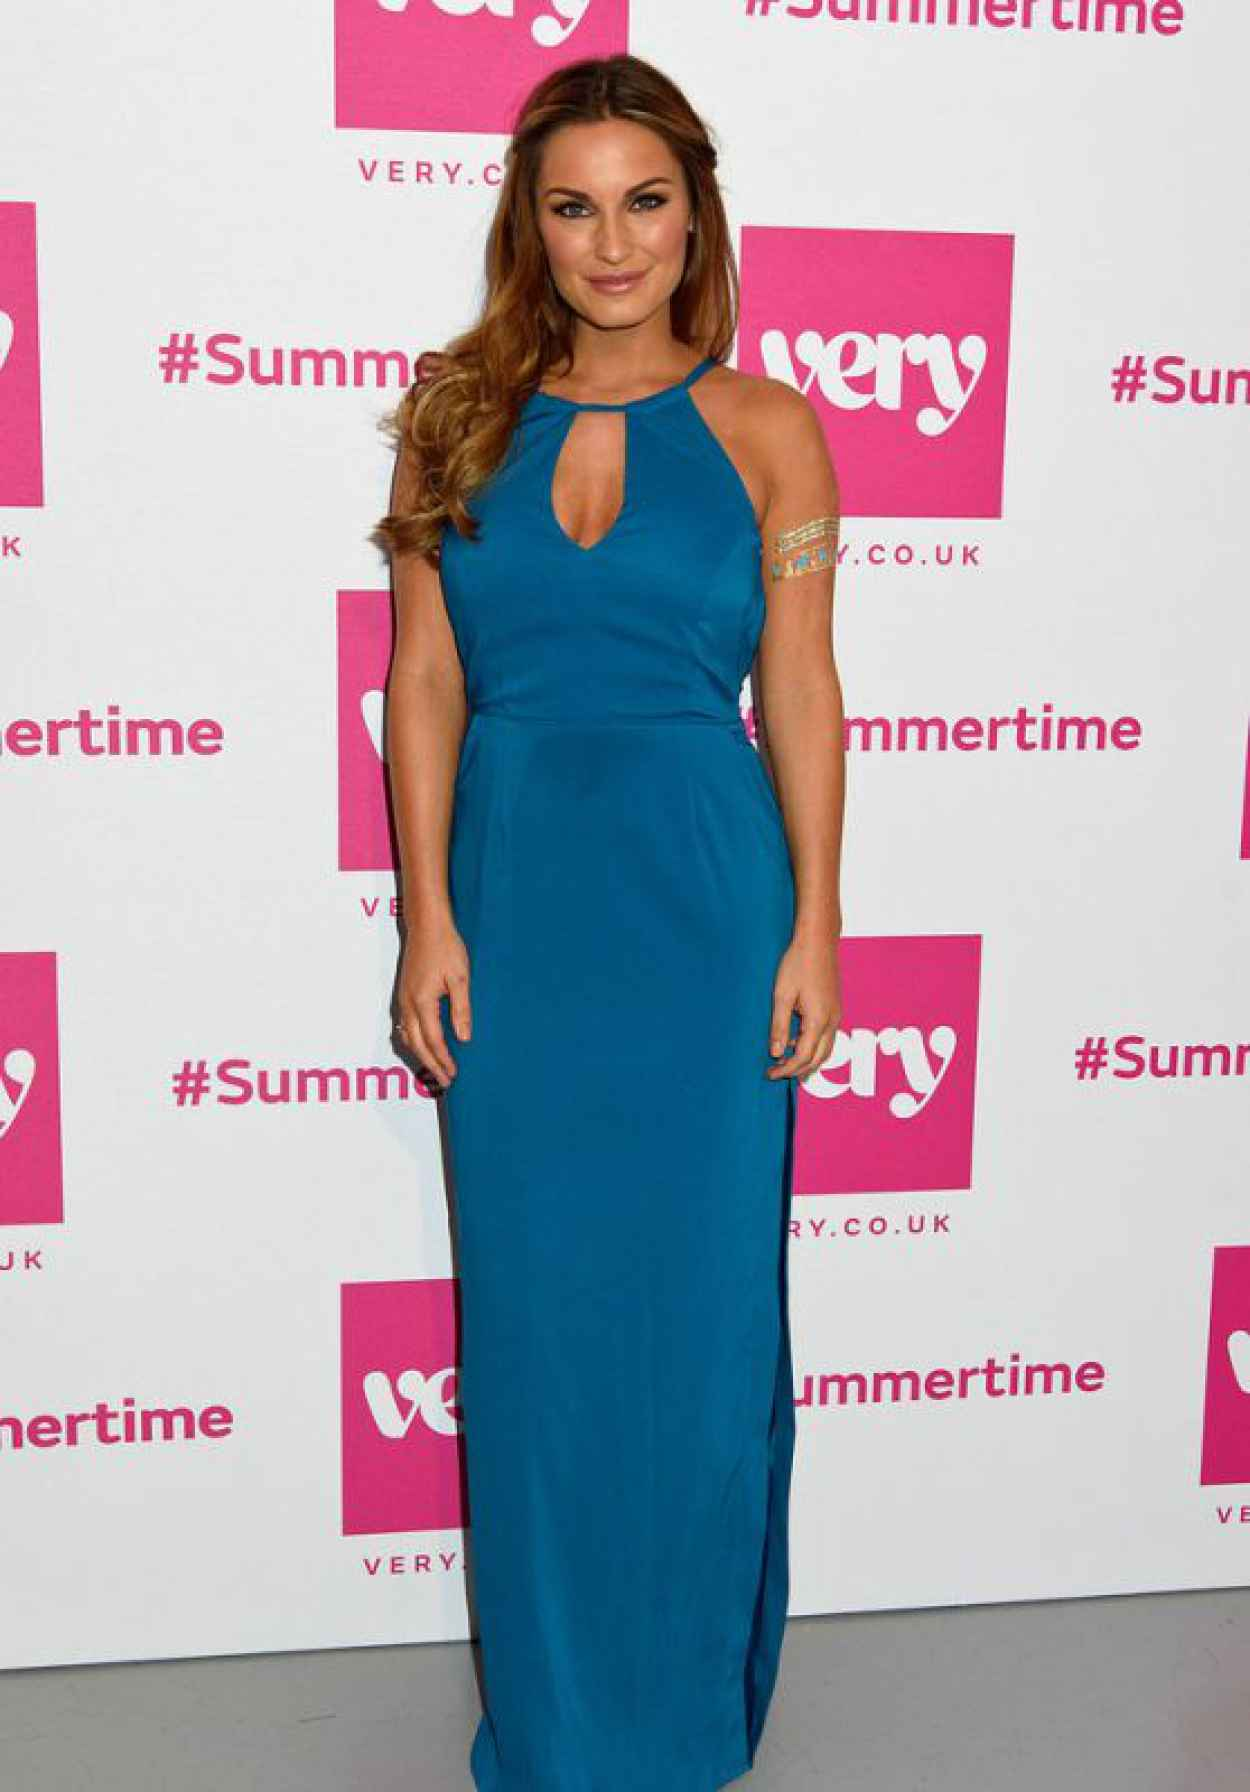 Sam Faiers - Very.co.uk Summertime party in London, August 2015-1